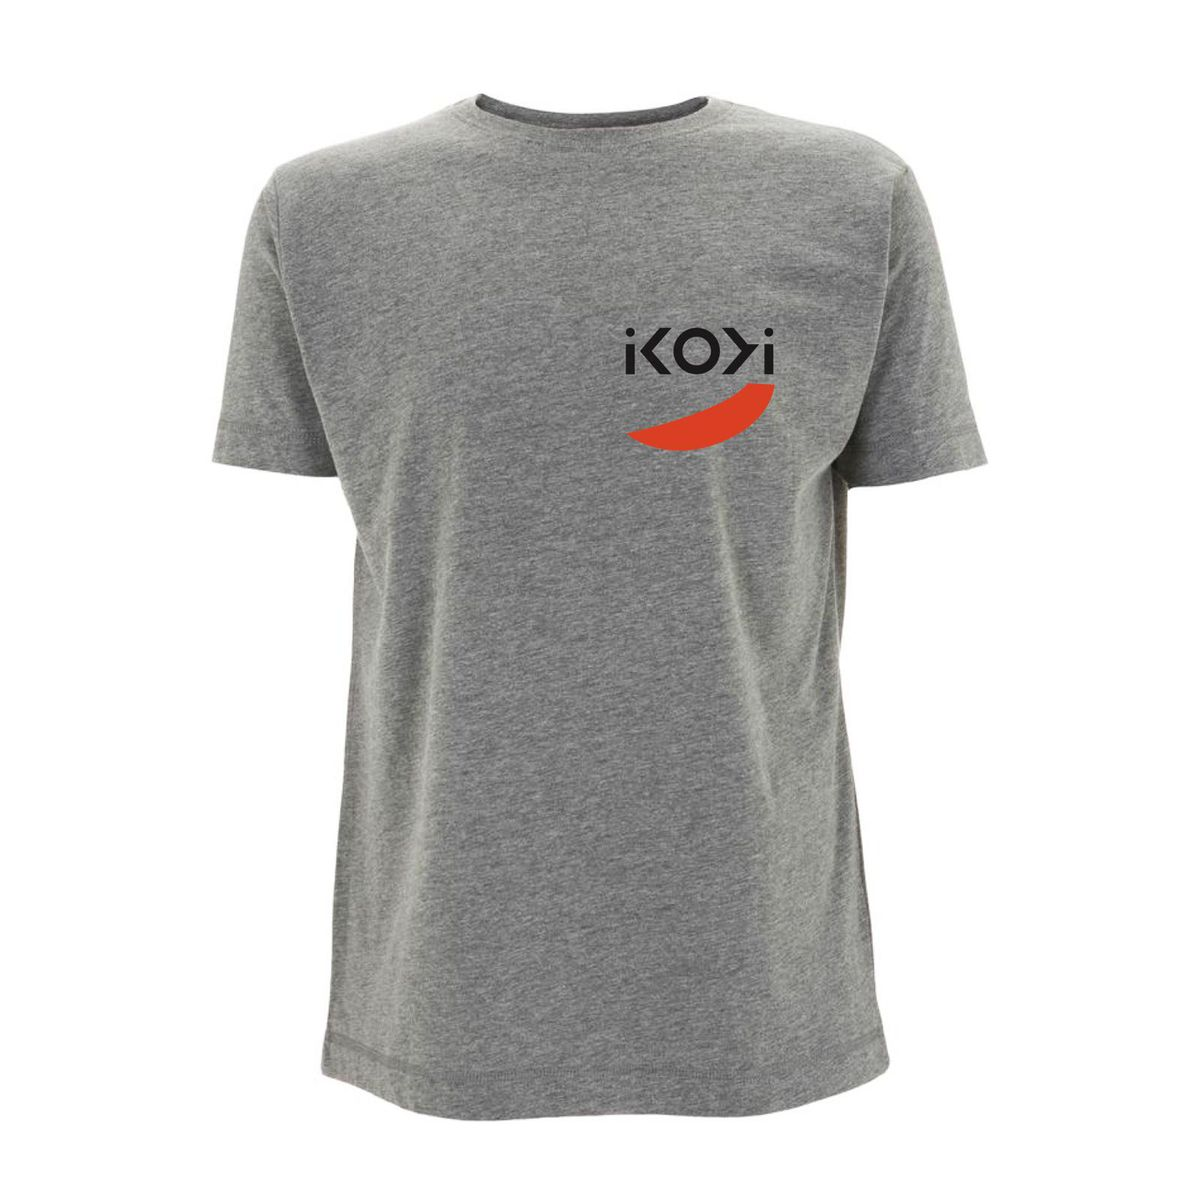 This Ikoyi t-shirt from Michelin-starred Ikoyi is some of the best restaurant merch to buy in London